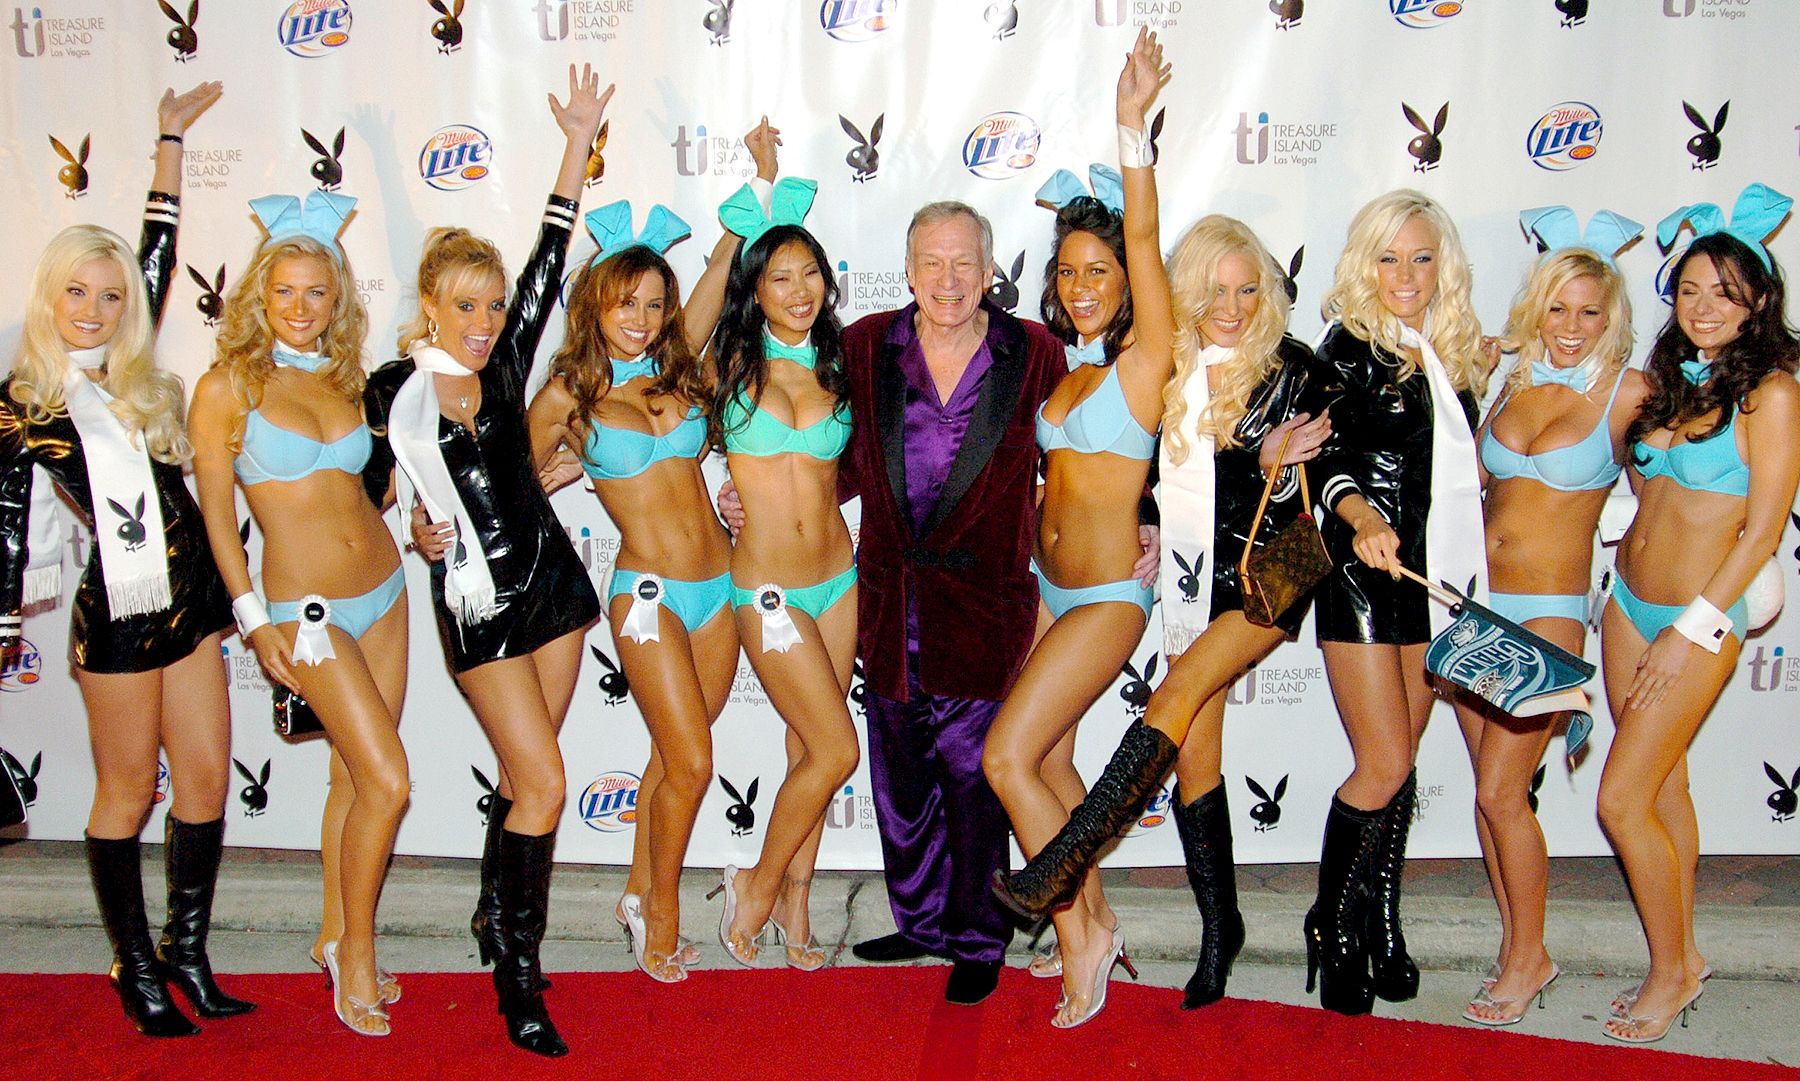 Hugh Hefner and Playboy Playmates during Playboy's 6th Annual Super Bowl Party at River City Brewing Company in Jacksonville, FL, in 2005.